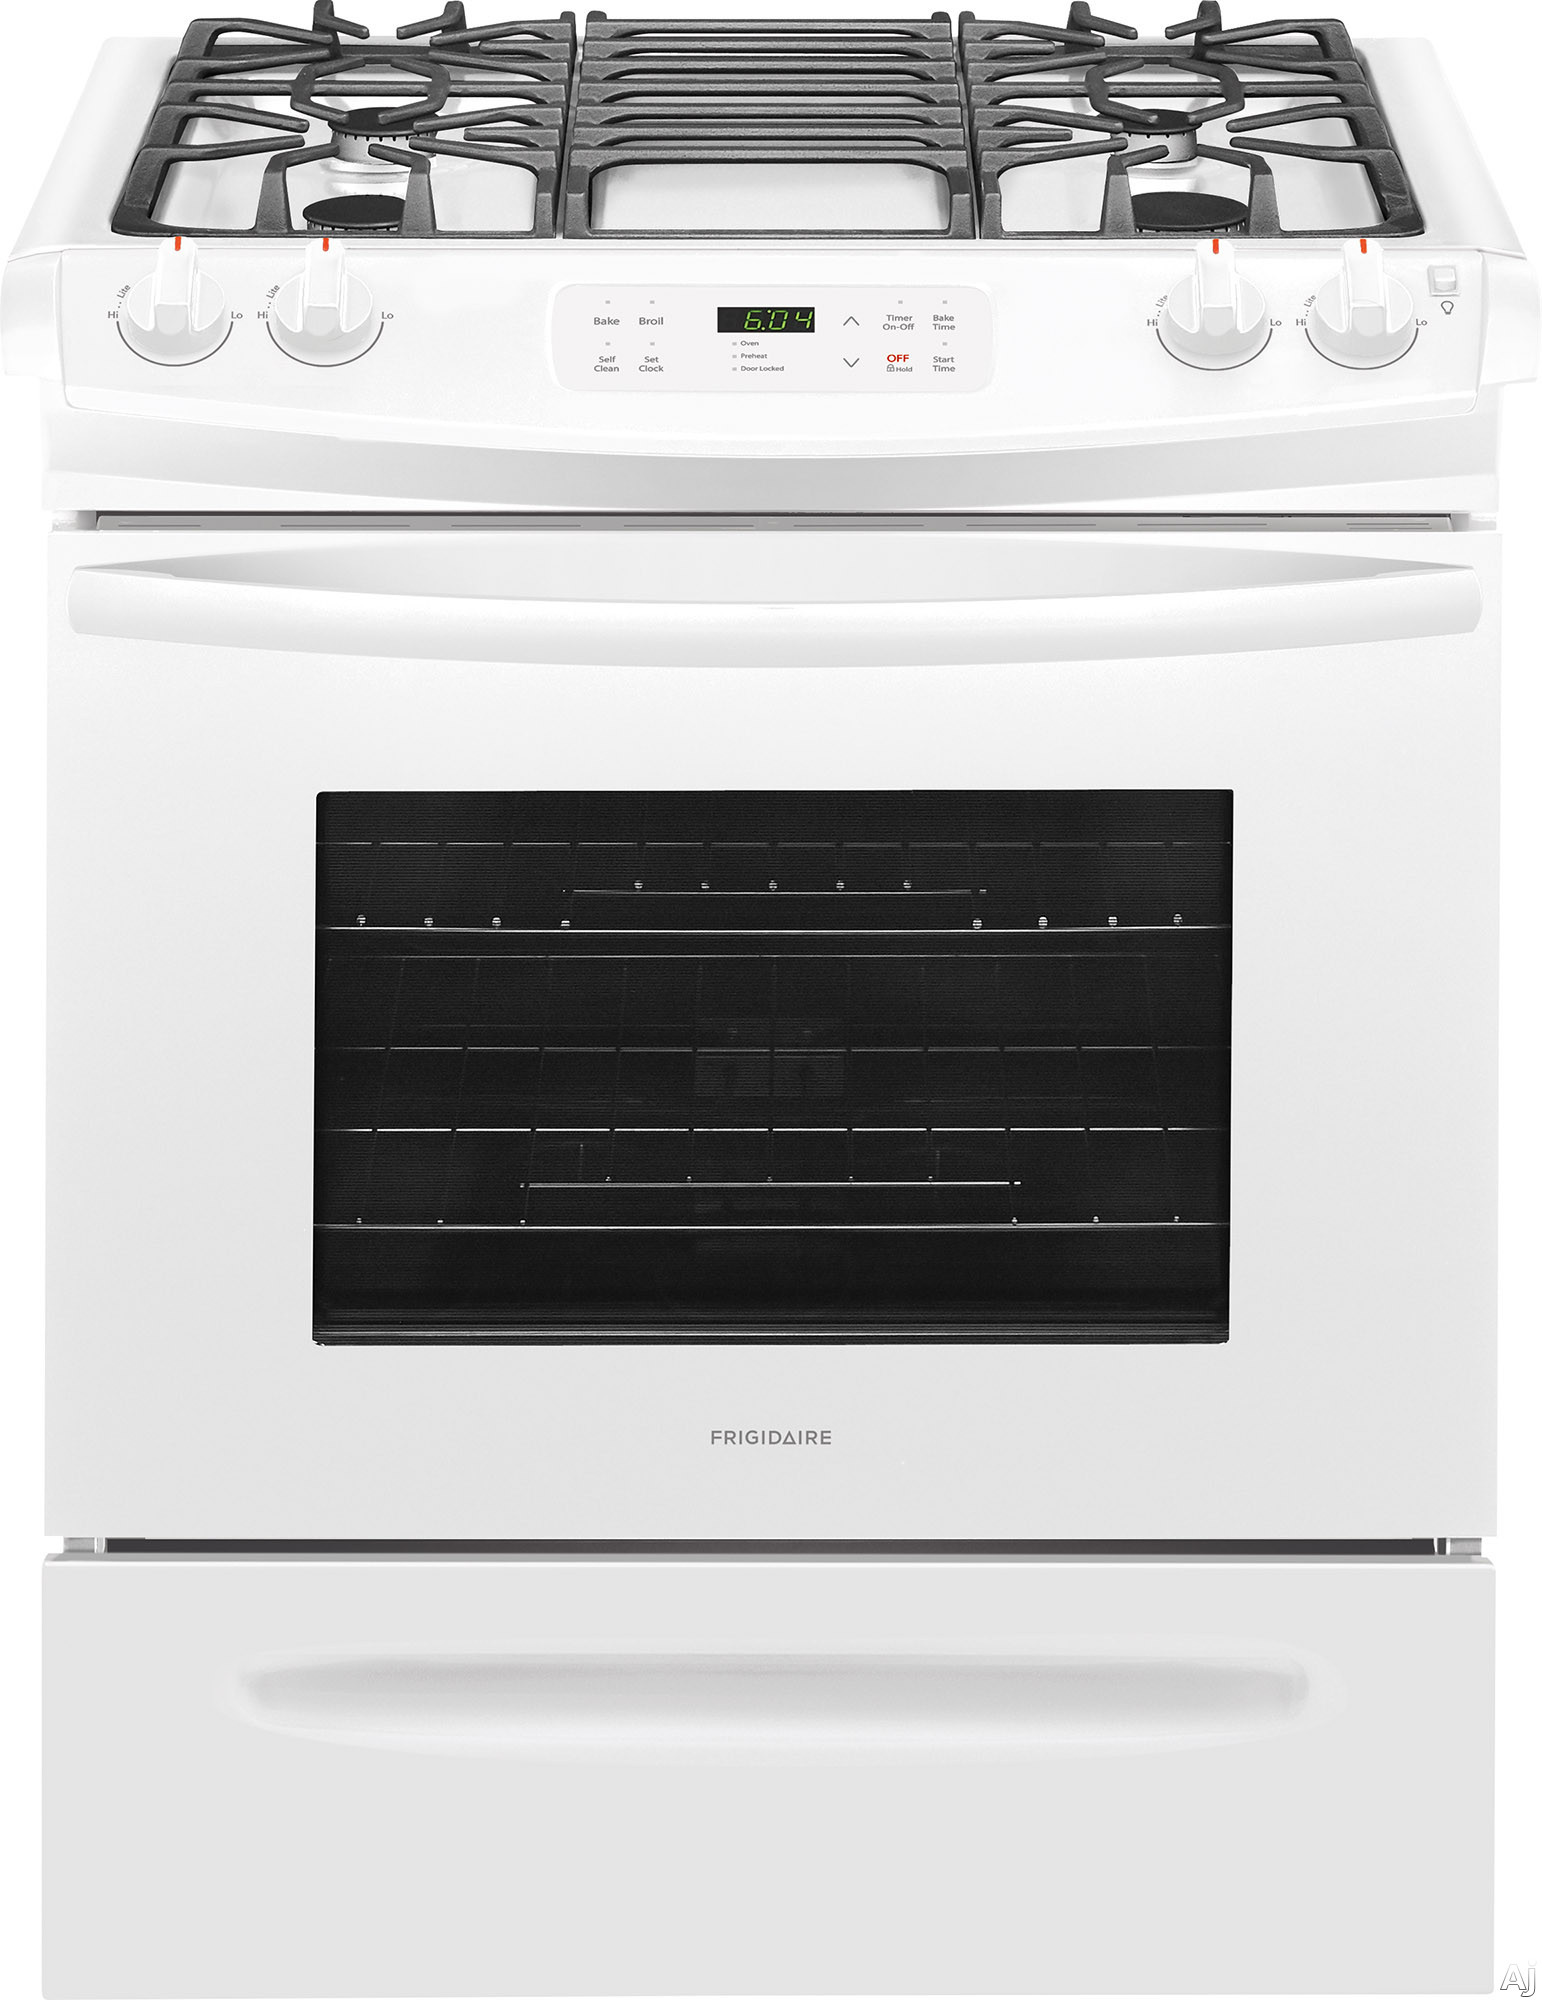 "Frigidaire FFGS3026TW 30 Inch Slide-In Gas Range with One-Touch Self Clean, Even Baking Technology, Continuous Grates, Store-Moreâ""¢ Storage Drawer, Oven Rack Handles, Delay Start Baking and 4.5 c"